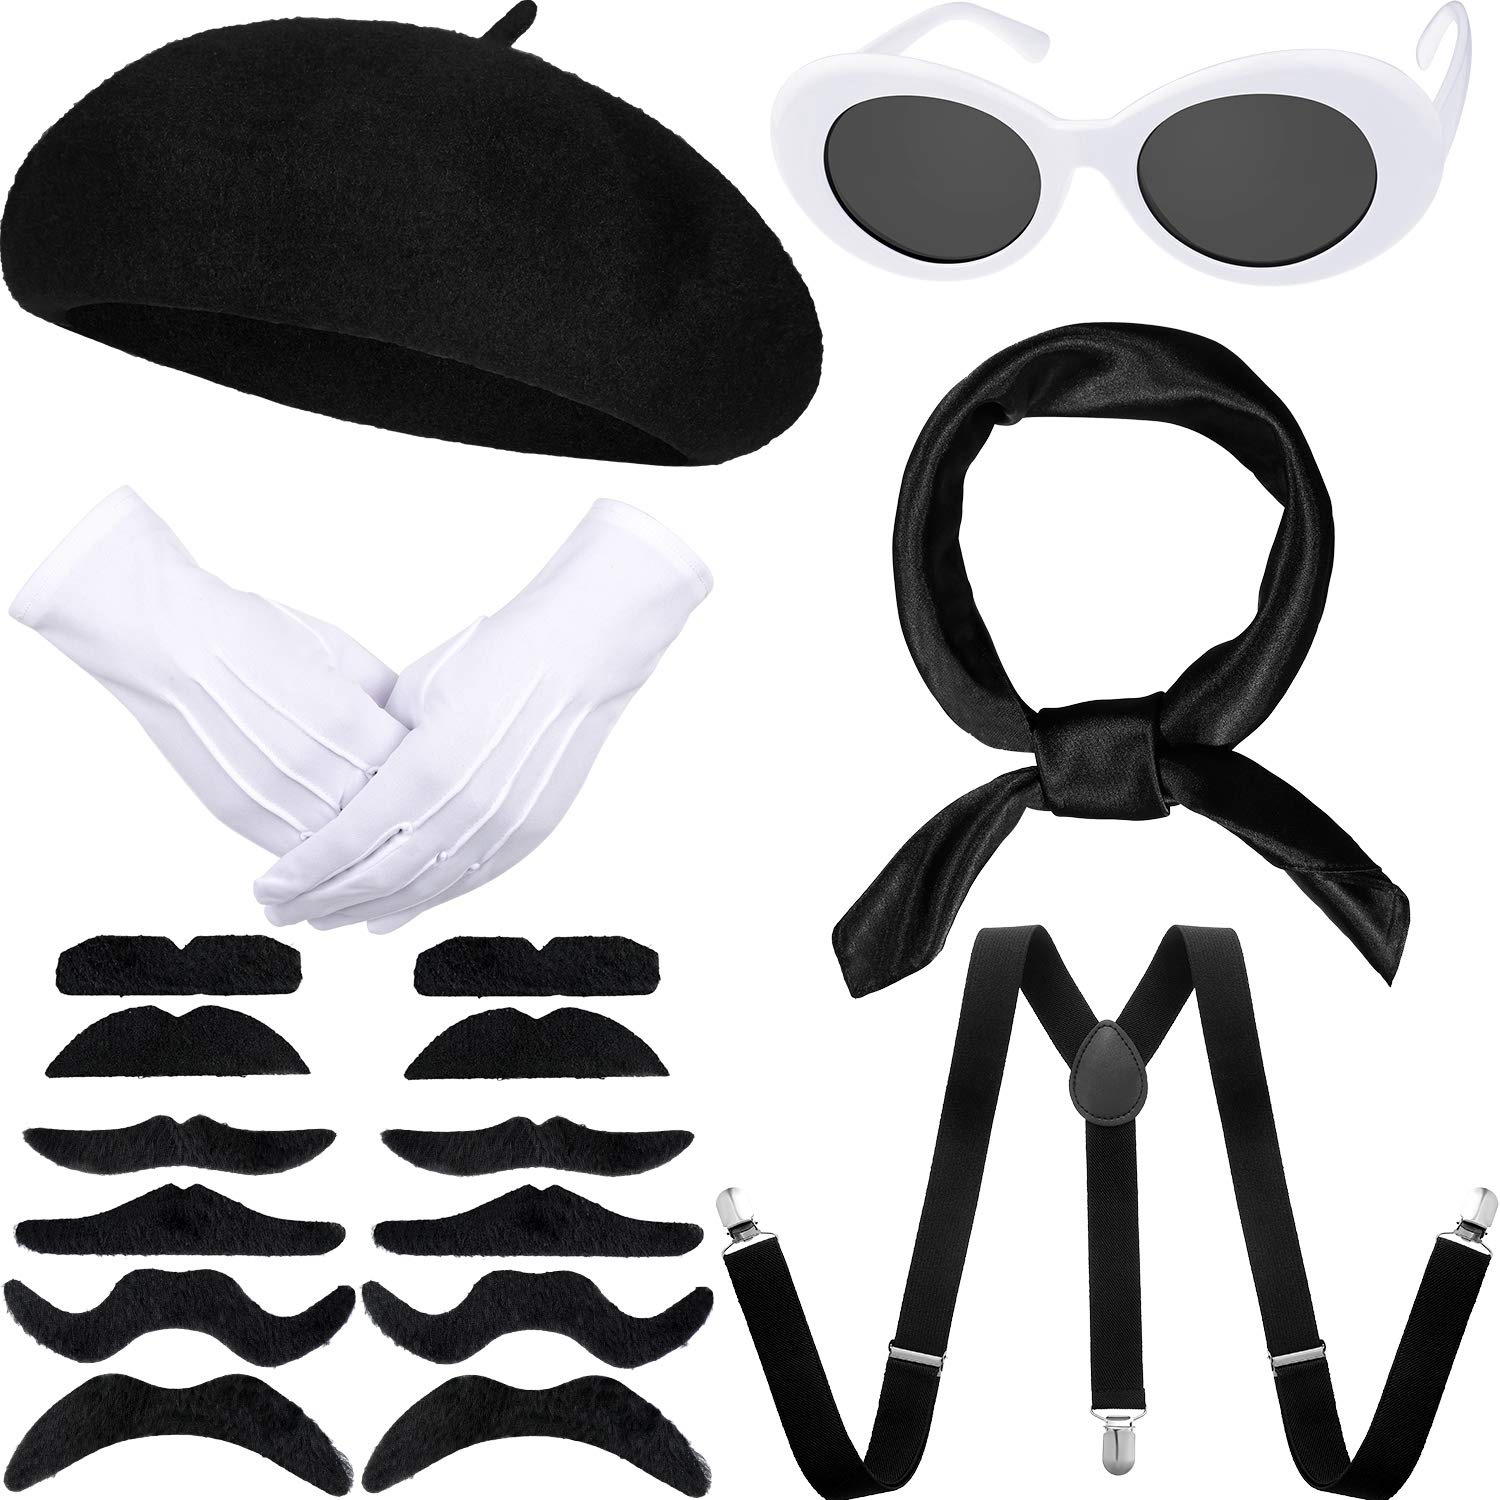 Women Girls French Themed Party Beret Hat Chiffon Scarf Gloves Retro Oval Sunglasses Fancy Dress Costume Accessories Set